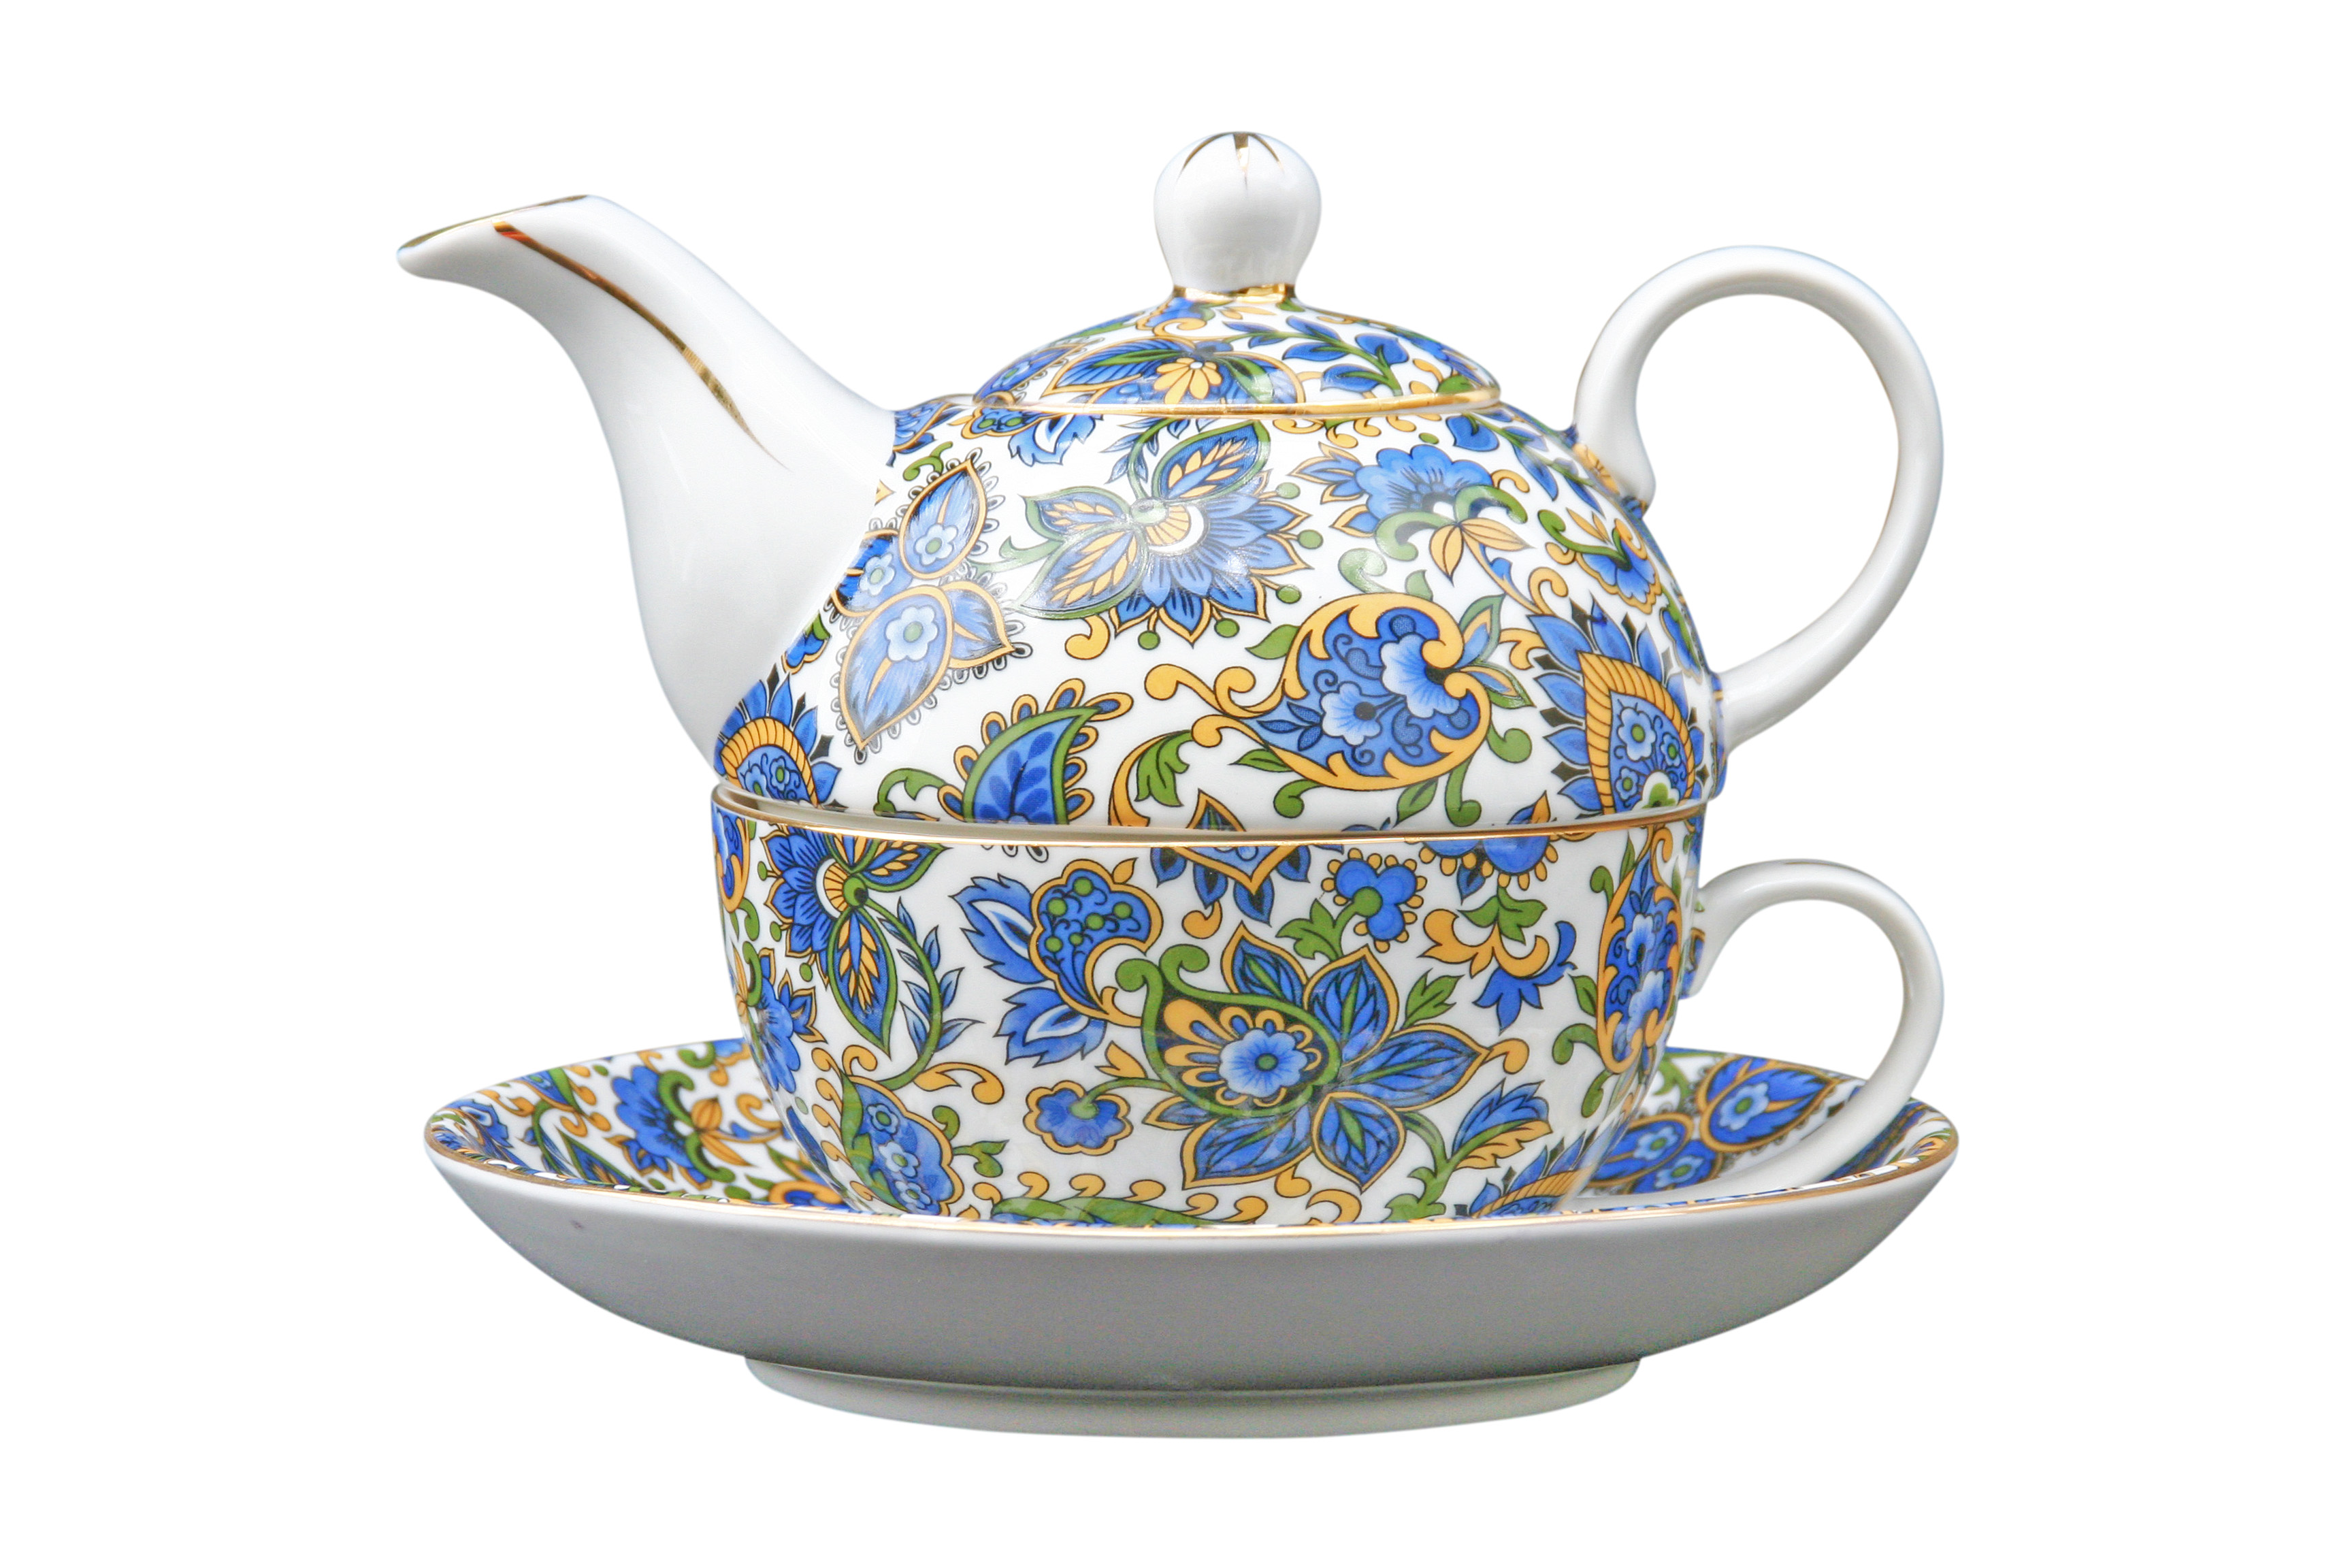 Paisley Blue tea for one set